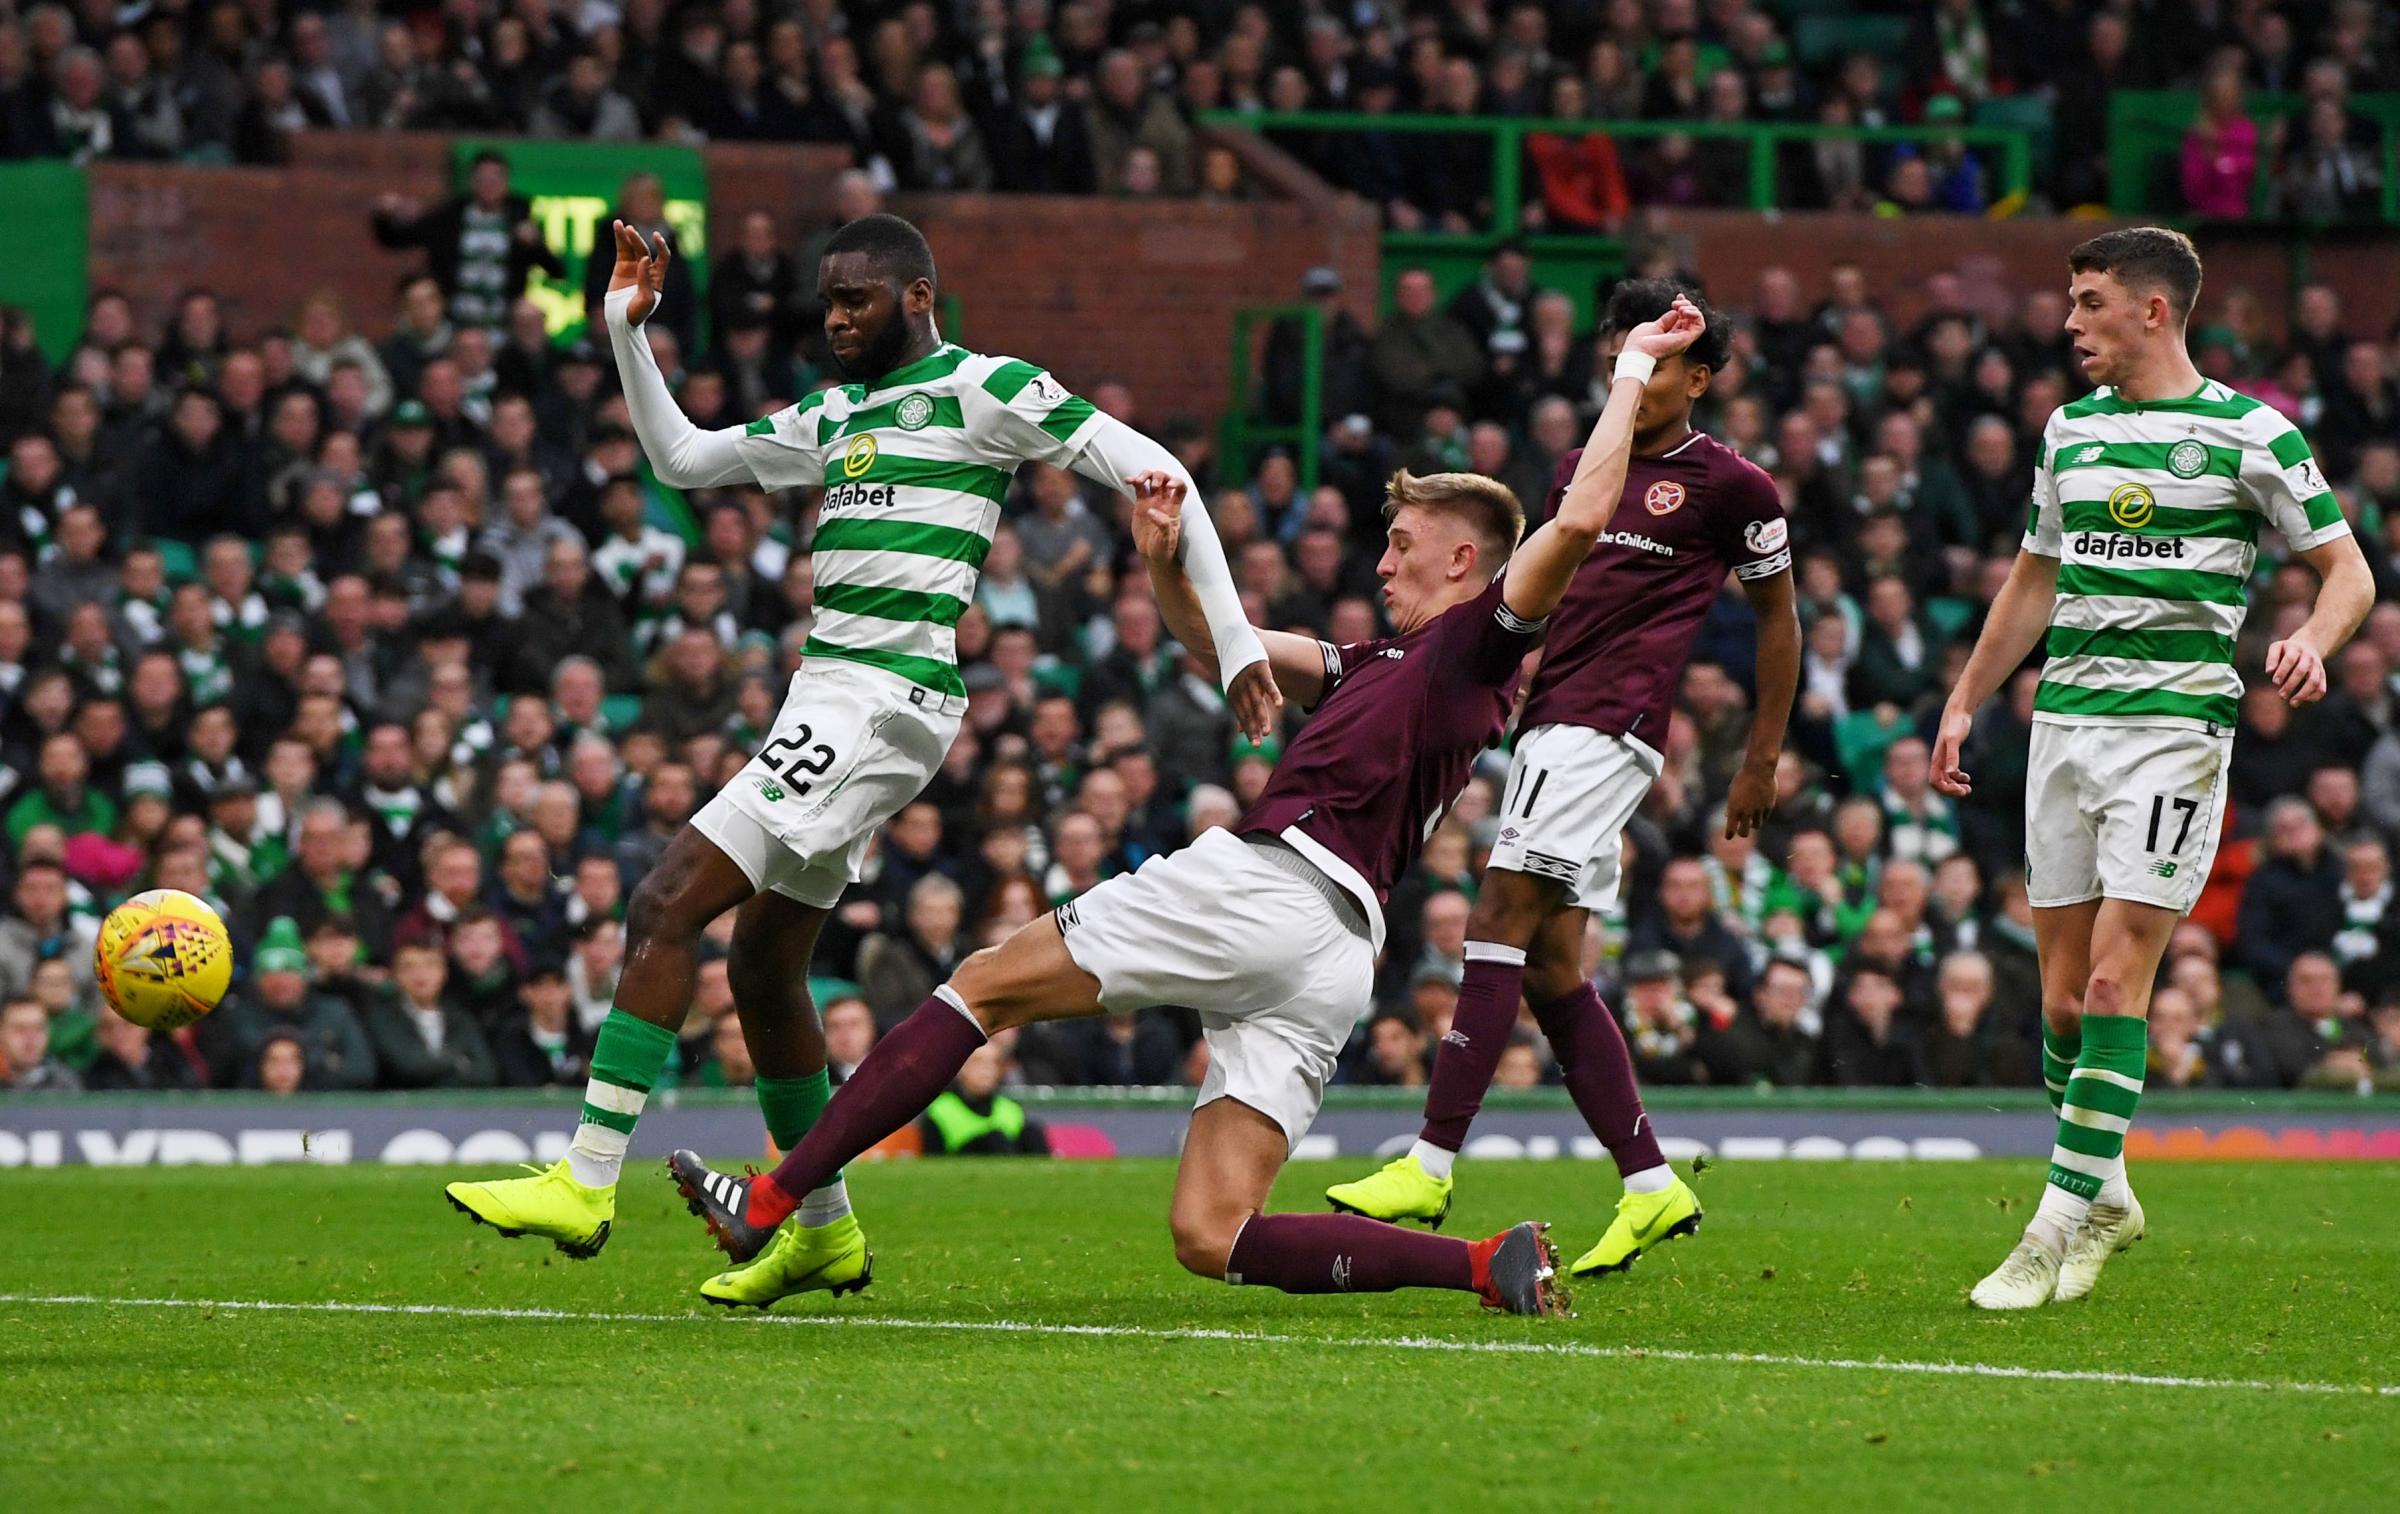 Celtic v Hearts | Kick-off, TV times, odds and team news